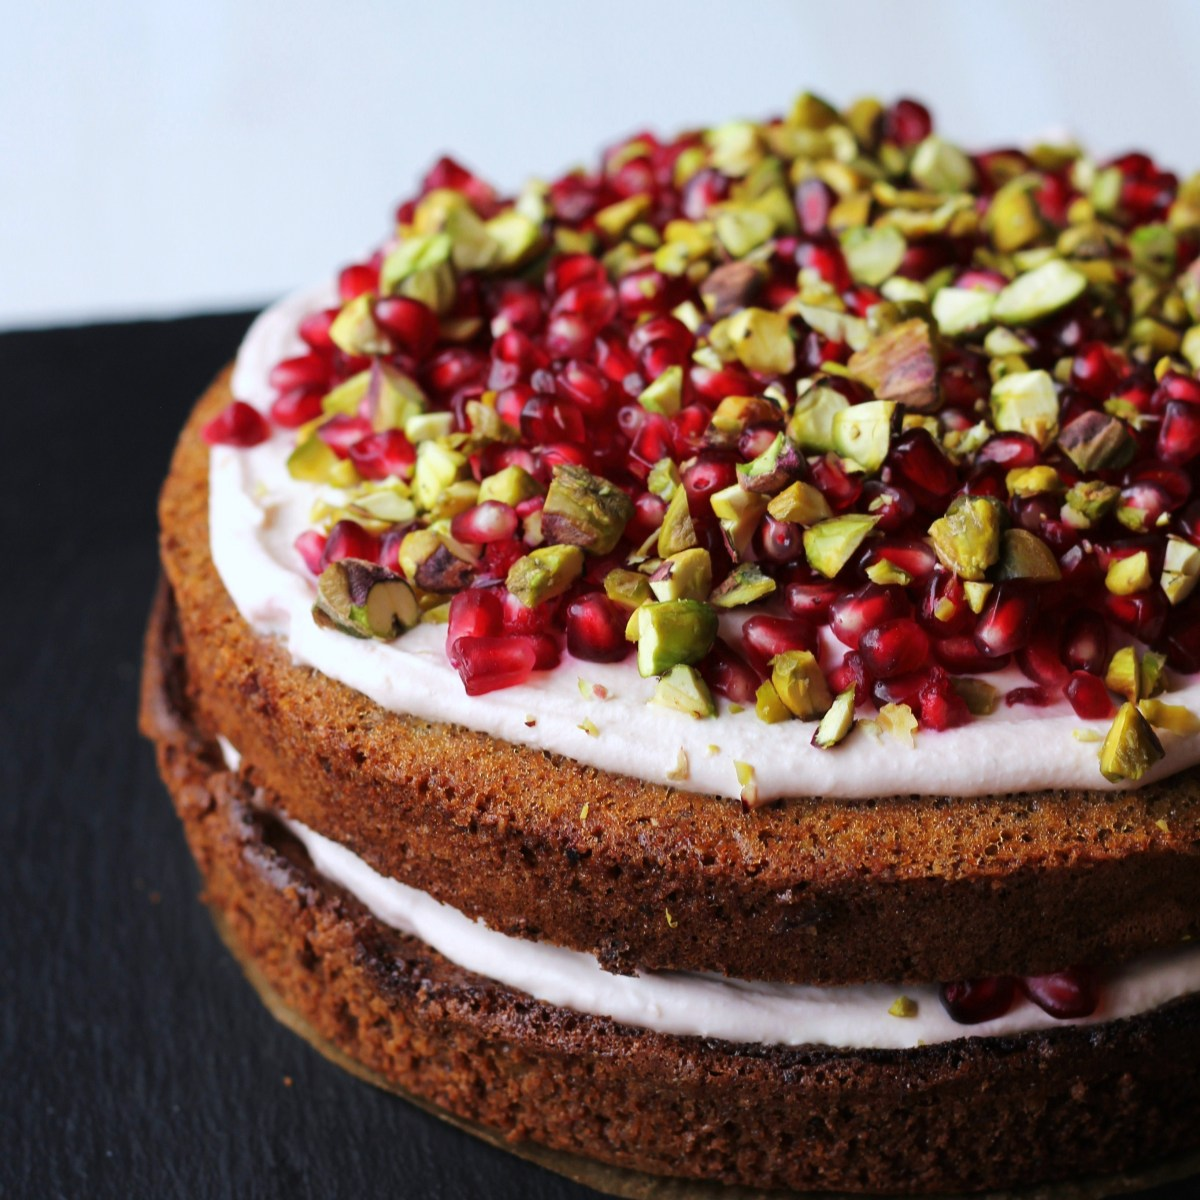 Turkish inspired: Pistachio & cardamom cake with pomegranate cream filling